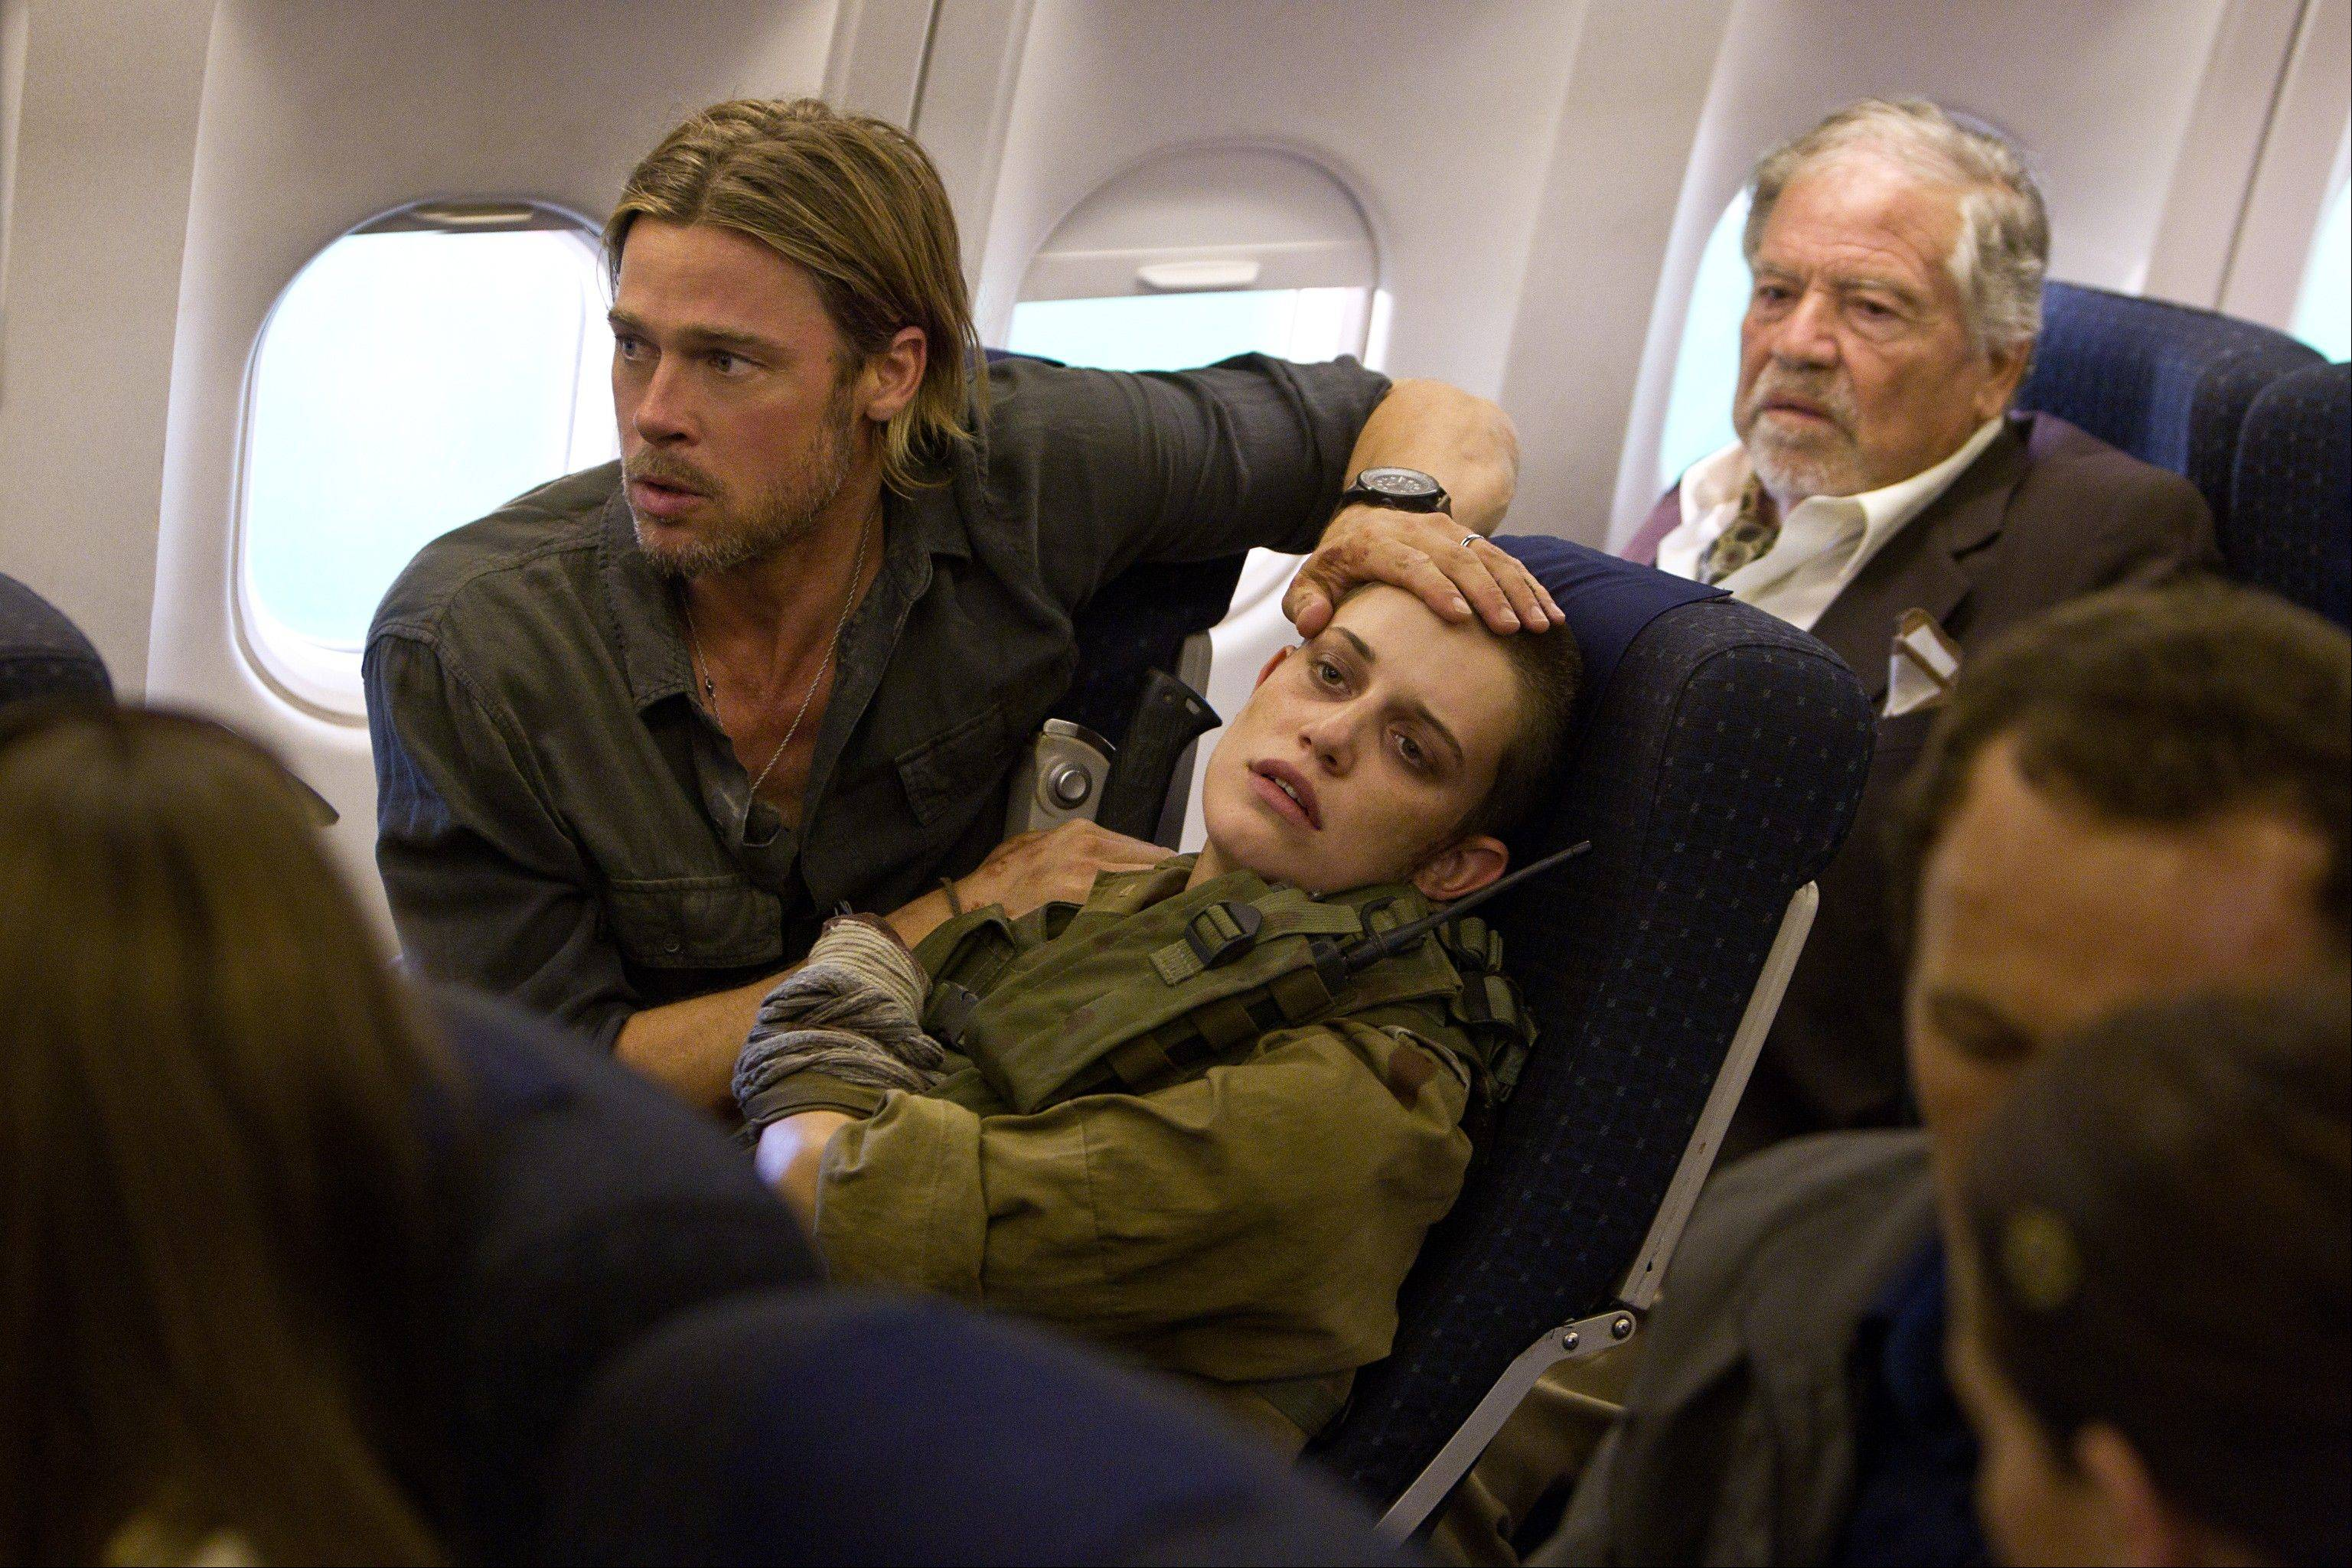 "U.N. investigator Gerry Lane (producer Brad Pitt) comforts a wounded Israeli soldier (Daniella Kert�sz) on an ill-fated plane trip in the action thriller ""World War Z."""